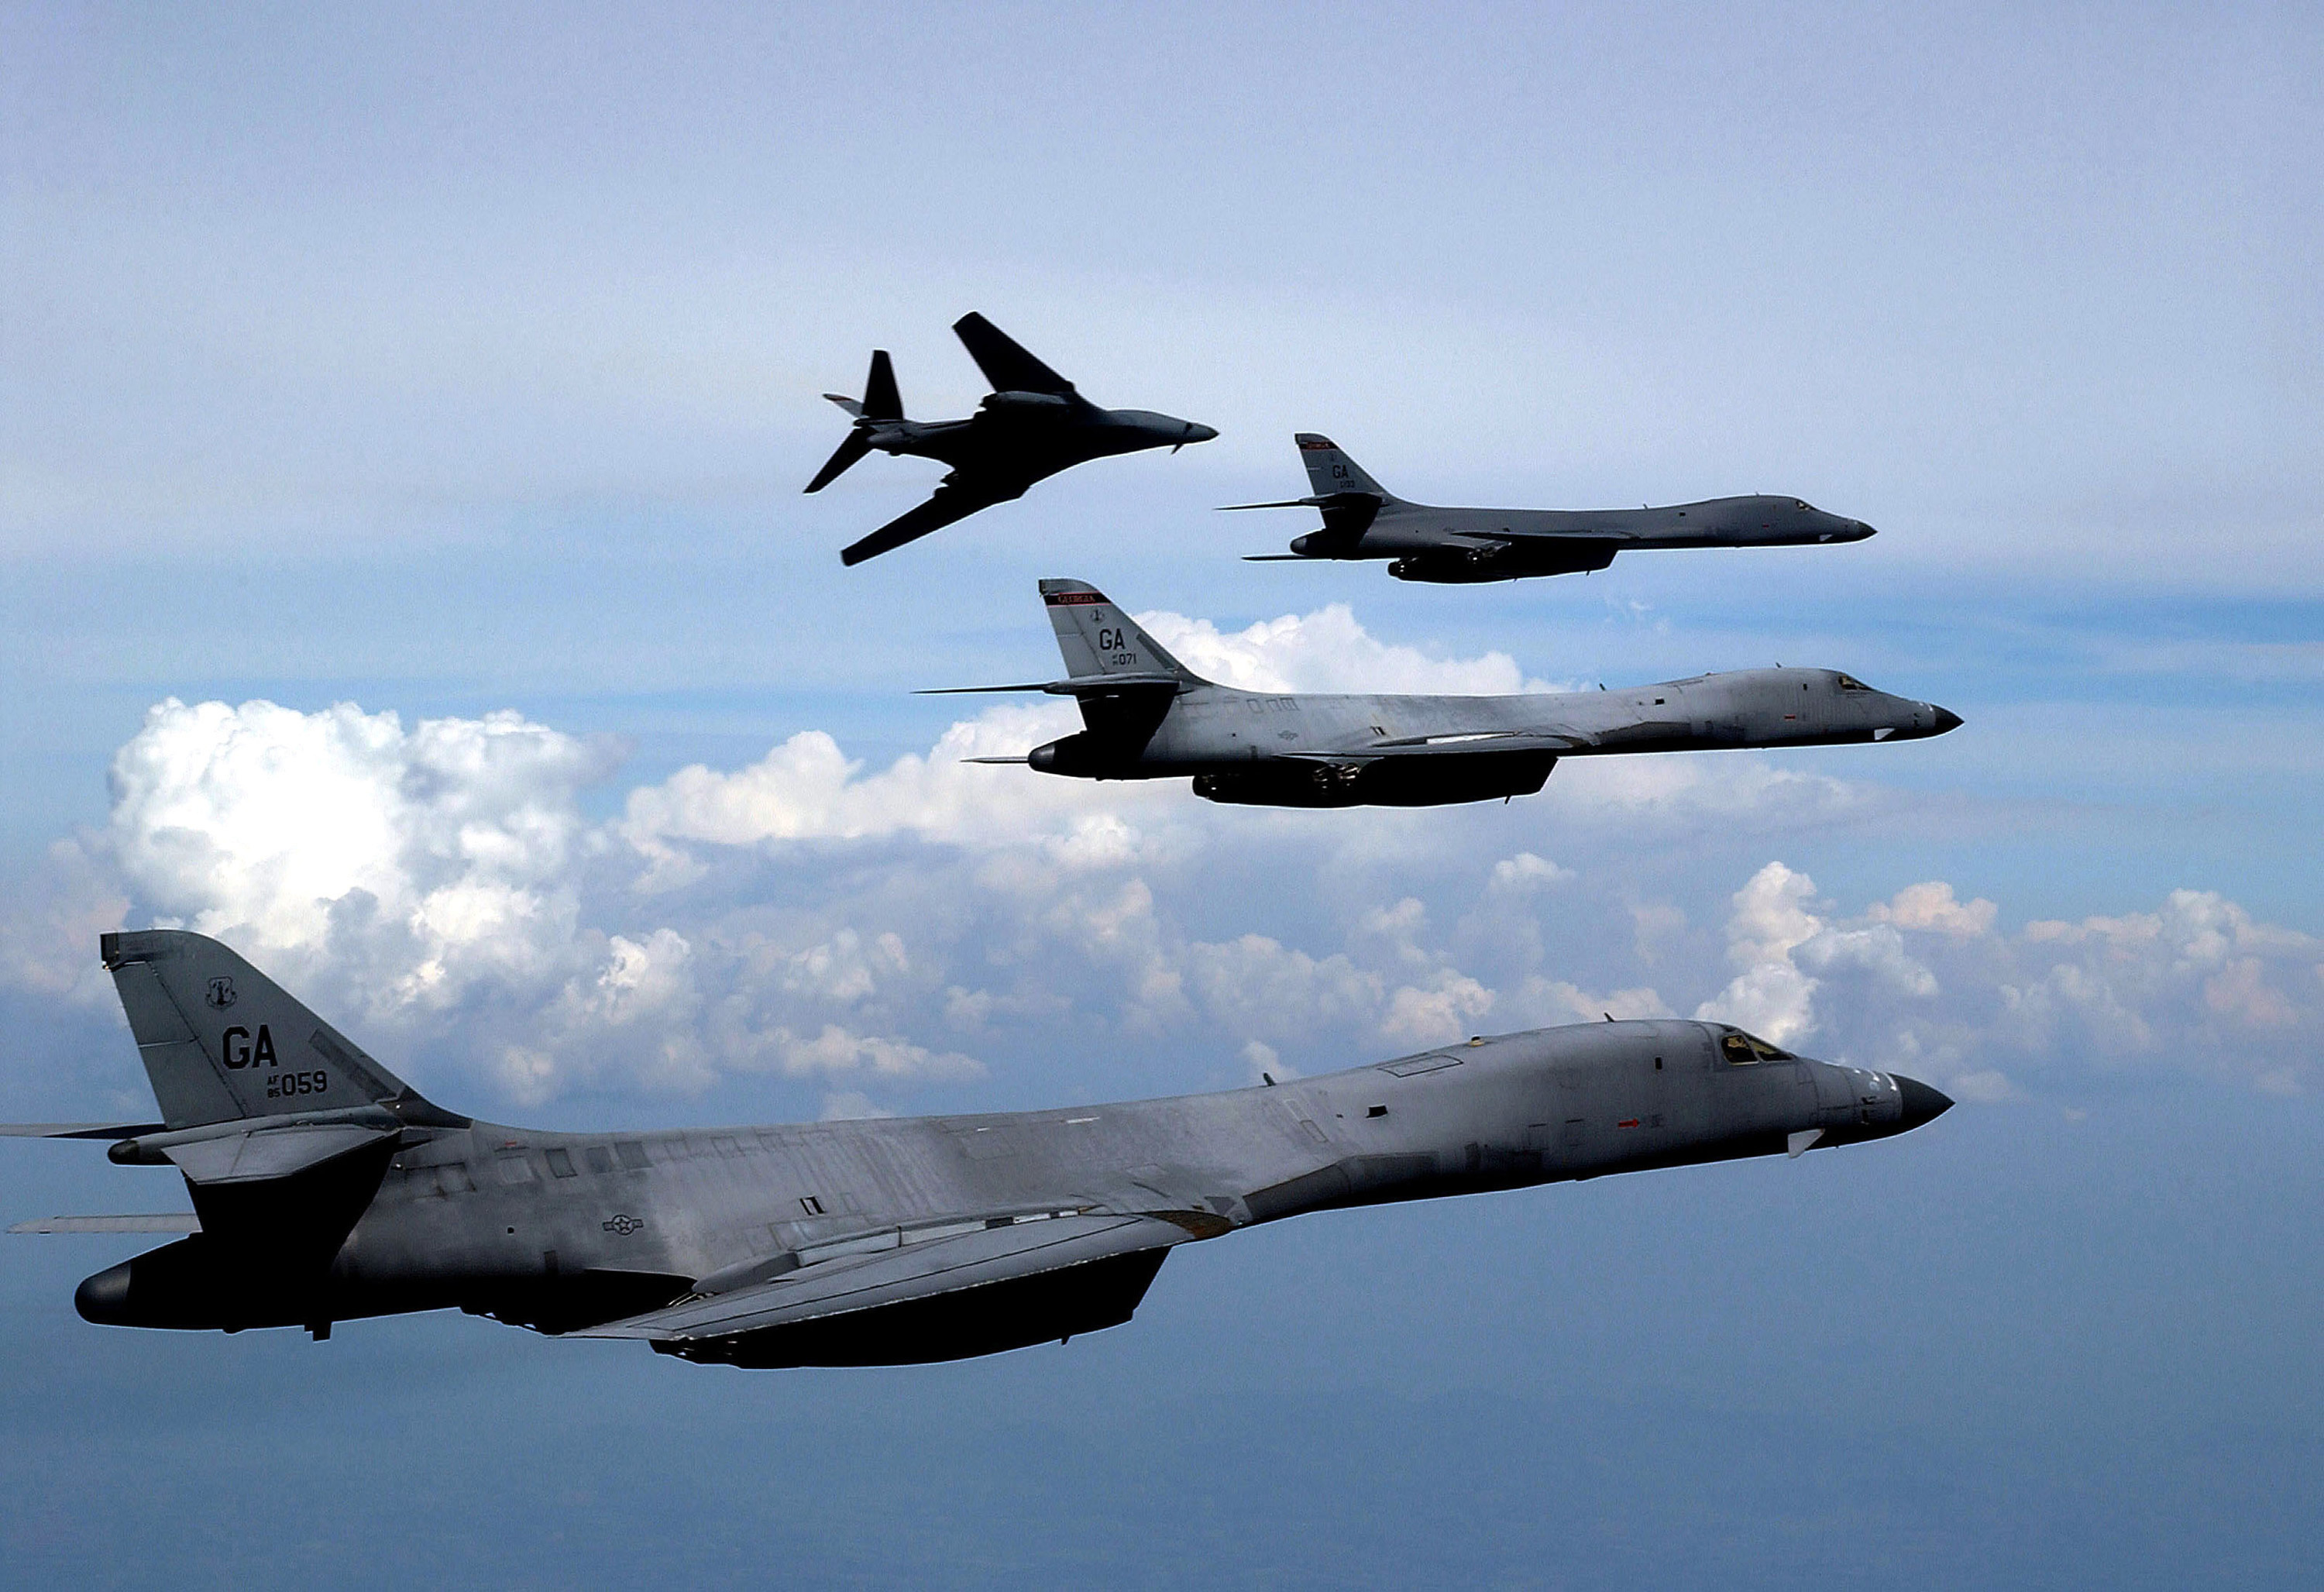 Aircraft bomber B1 Lancer HD Wallpaper